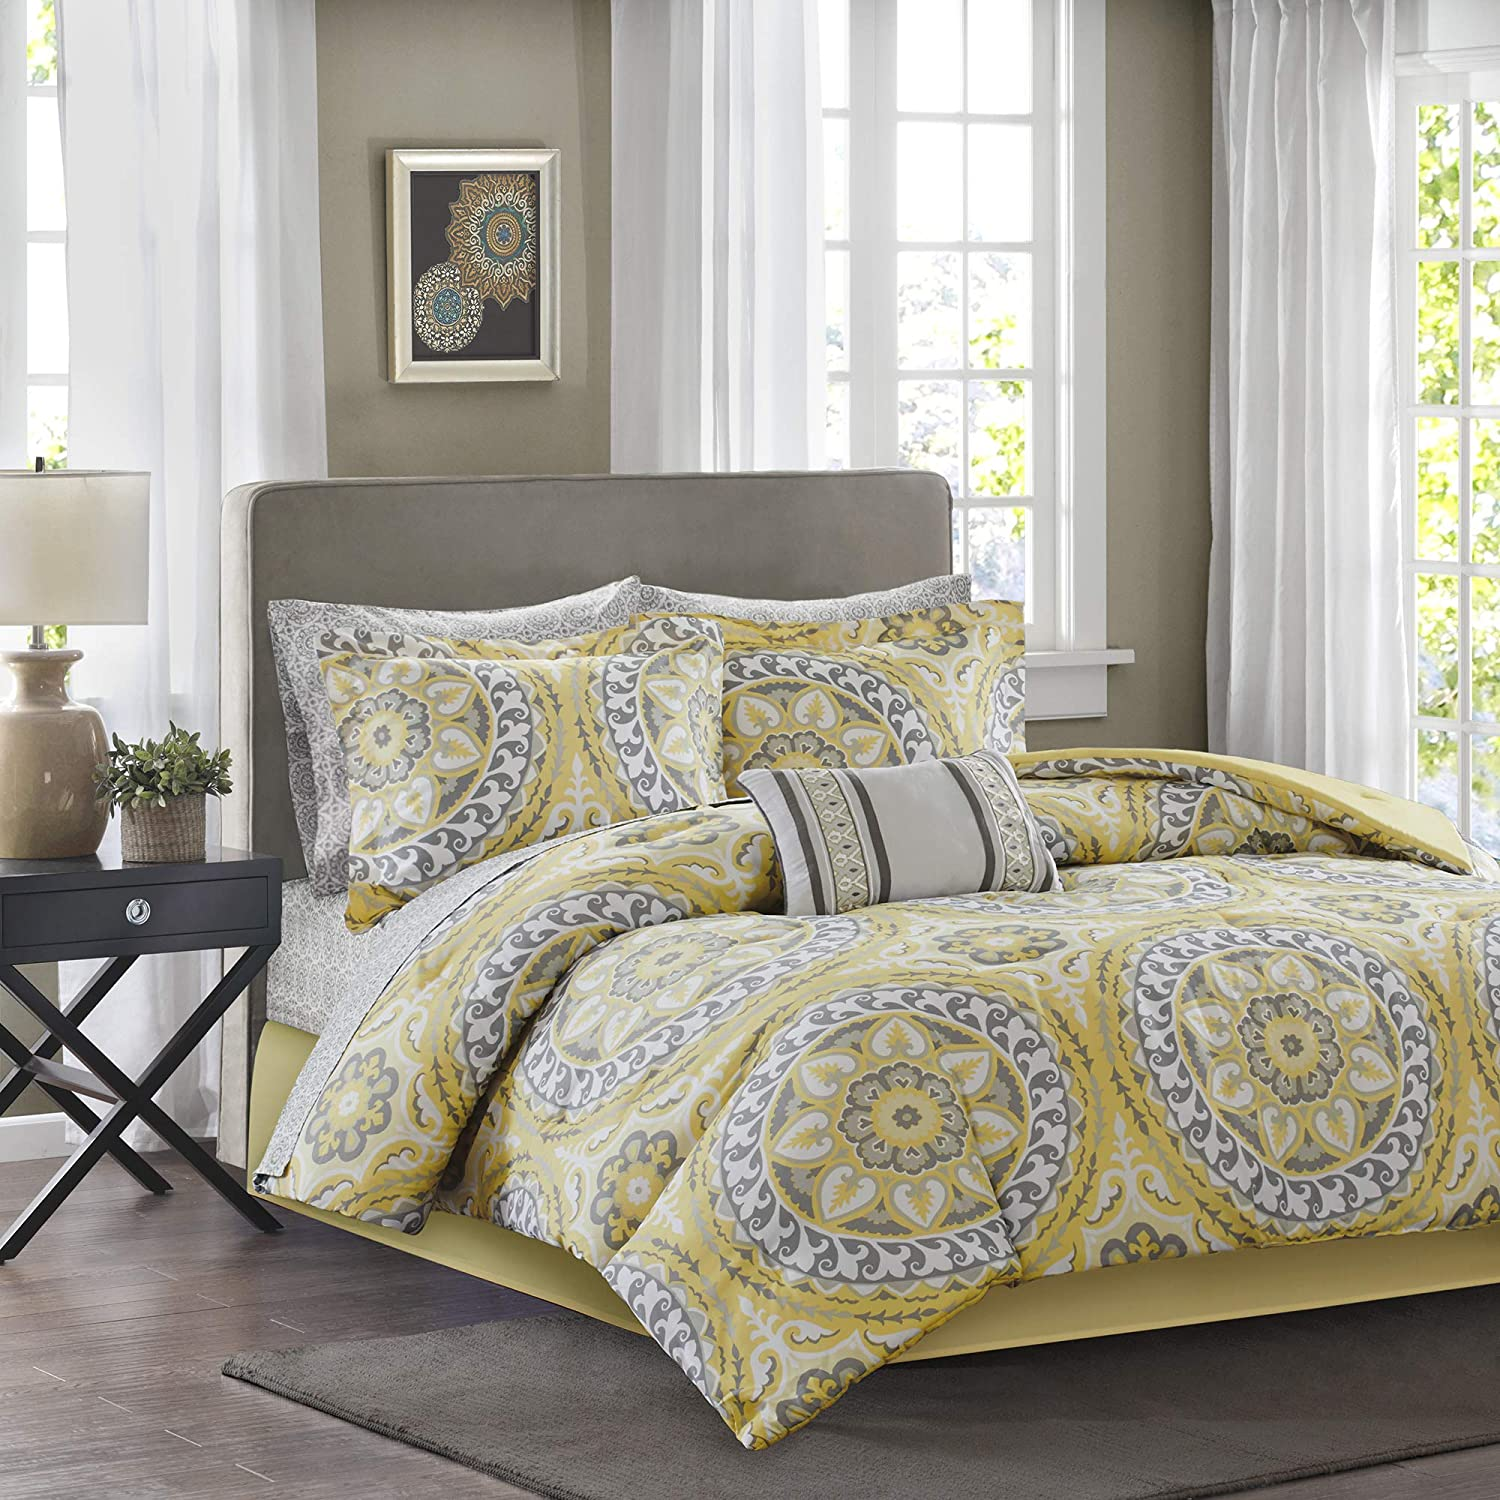 Madison Park Essentials Cozy Bag Comforter, Medallion Damask Design All Season Down Alternative Complete Sheet Set